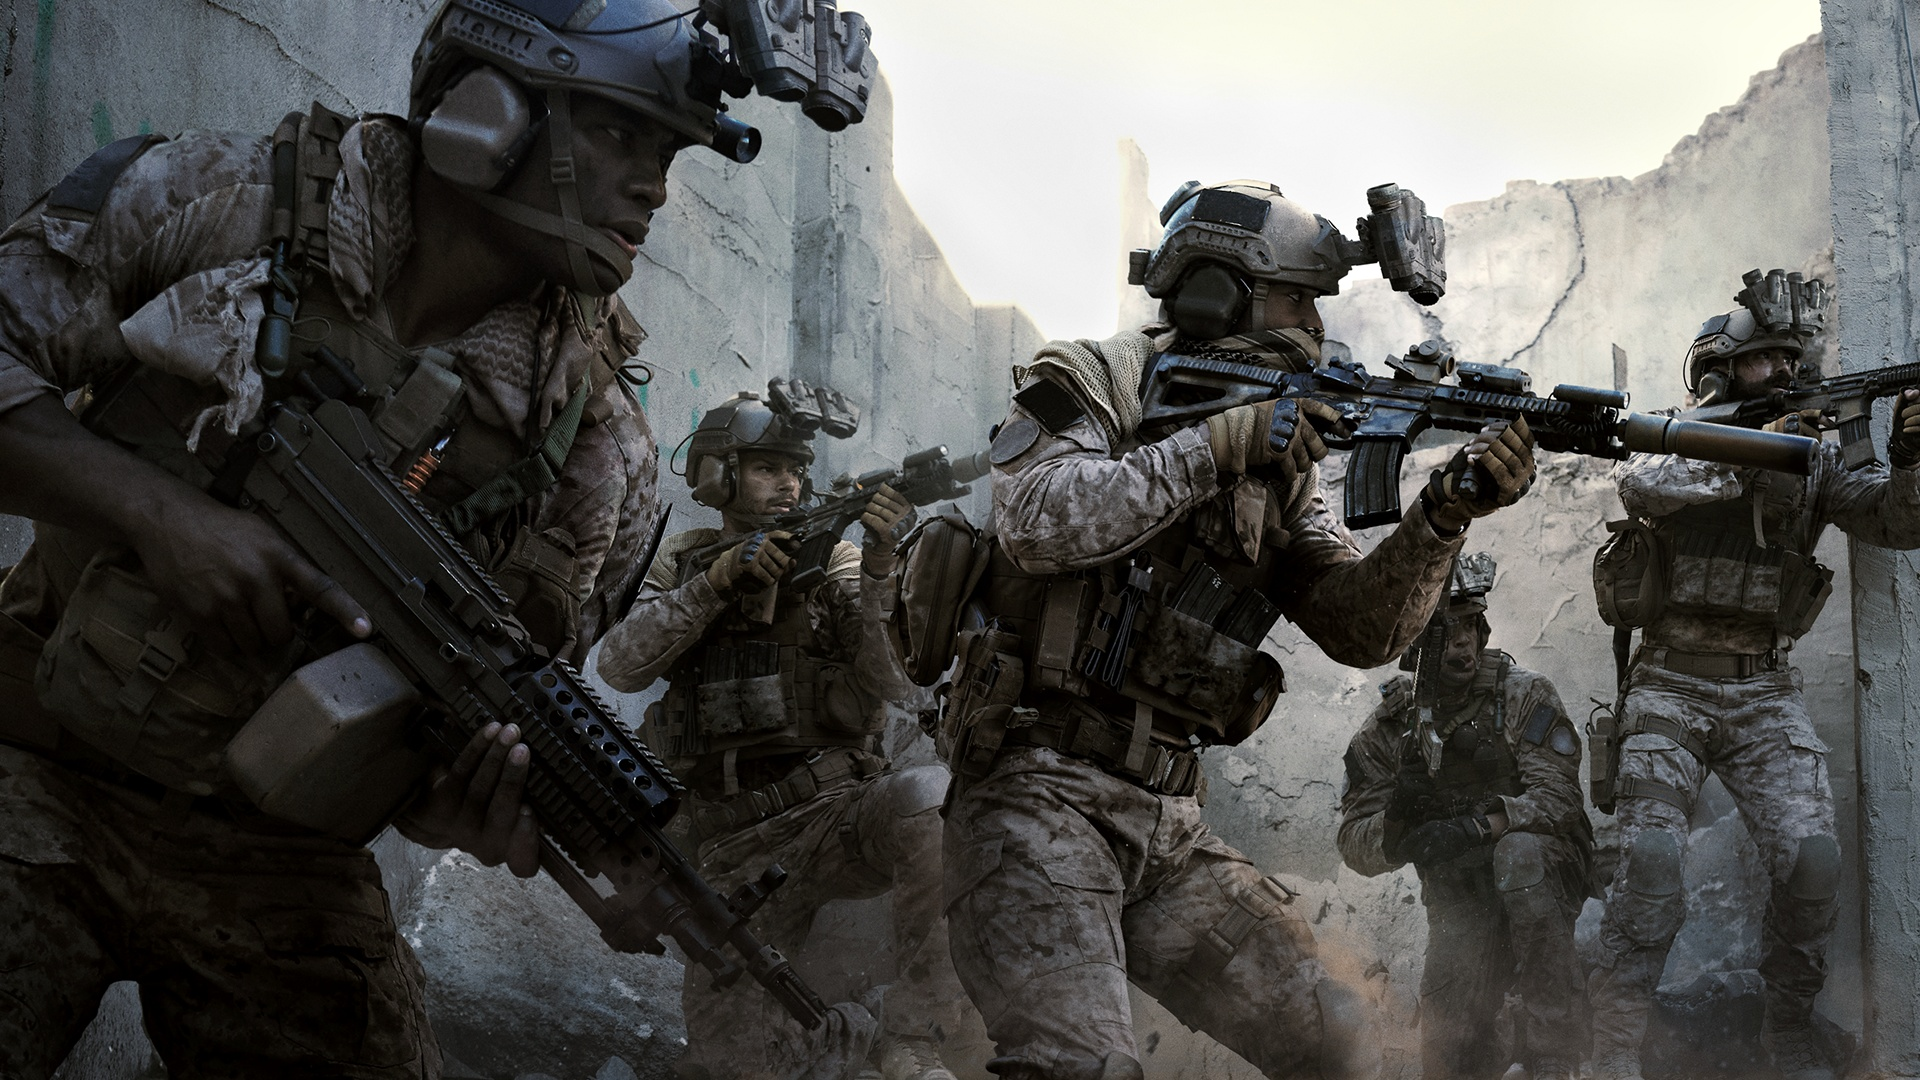 Video For Call of Duty: Modern Warfare Multiplayer Premiere Reveal is Live on Mixer